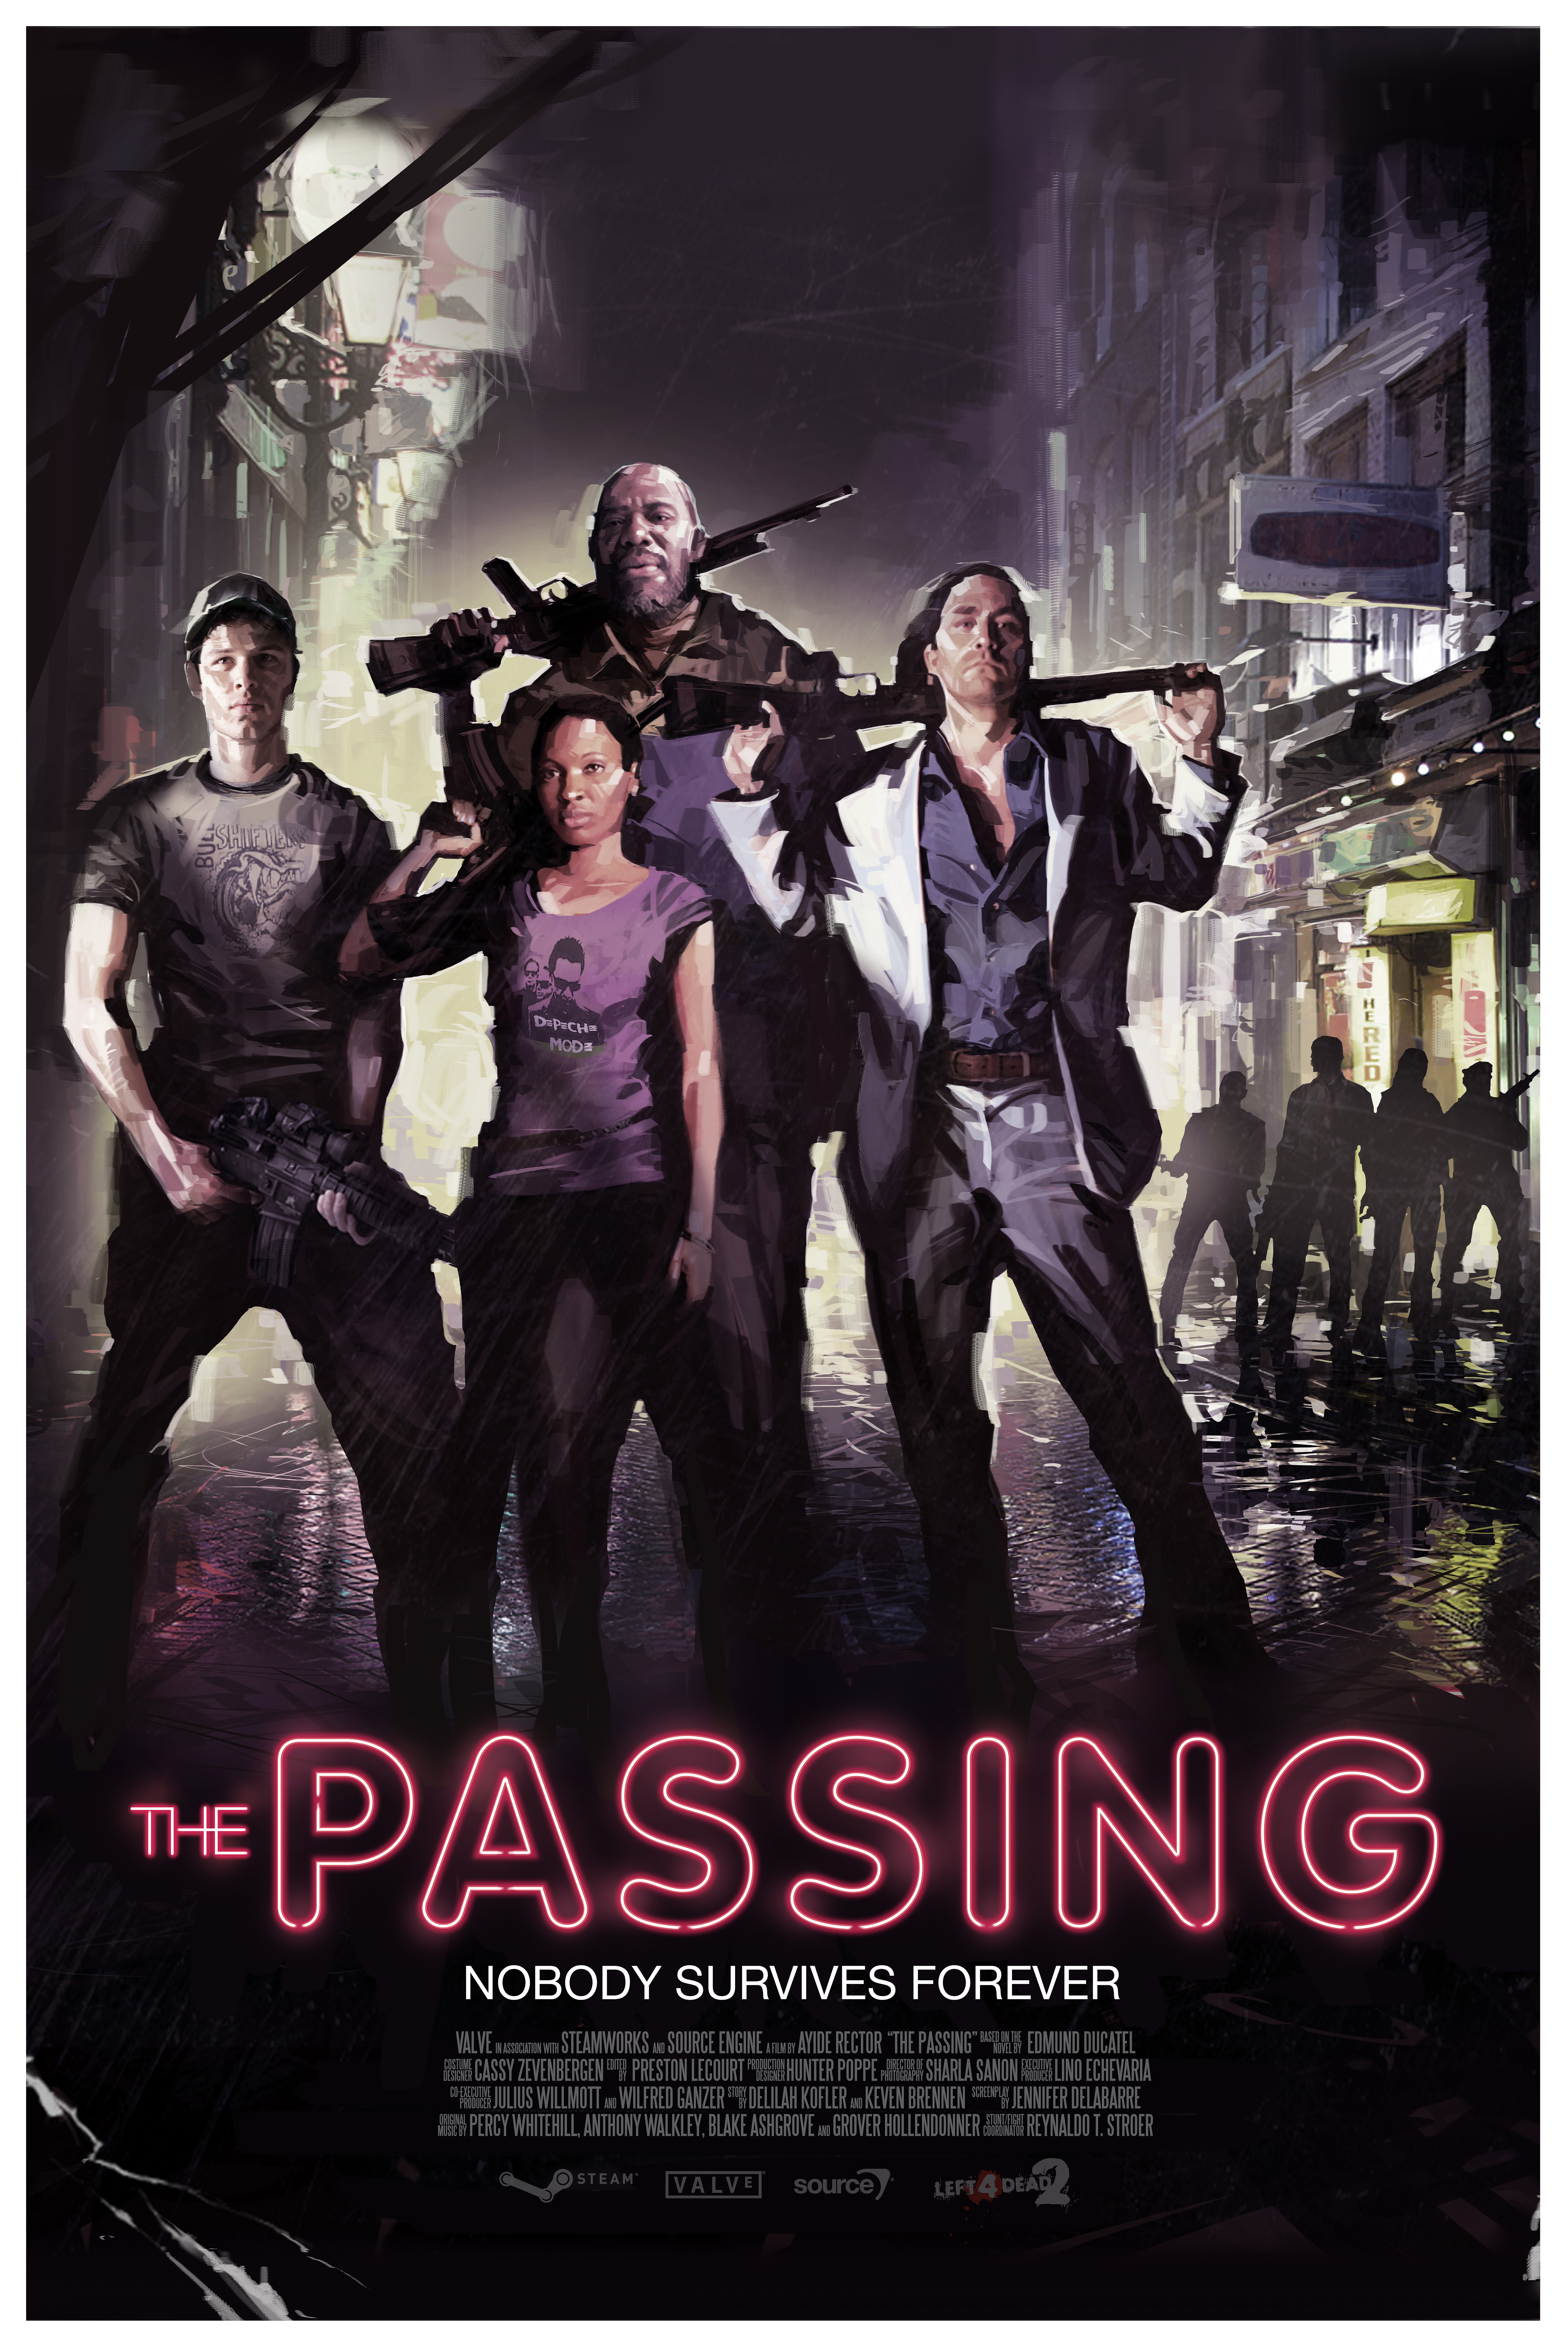 Left 4 Dead 2: The Passing Poster - Blue's News